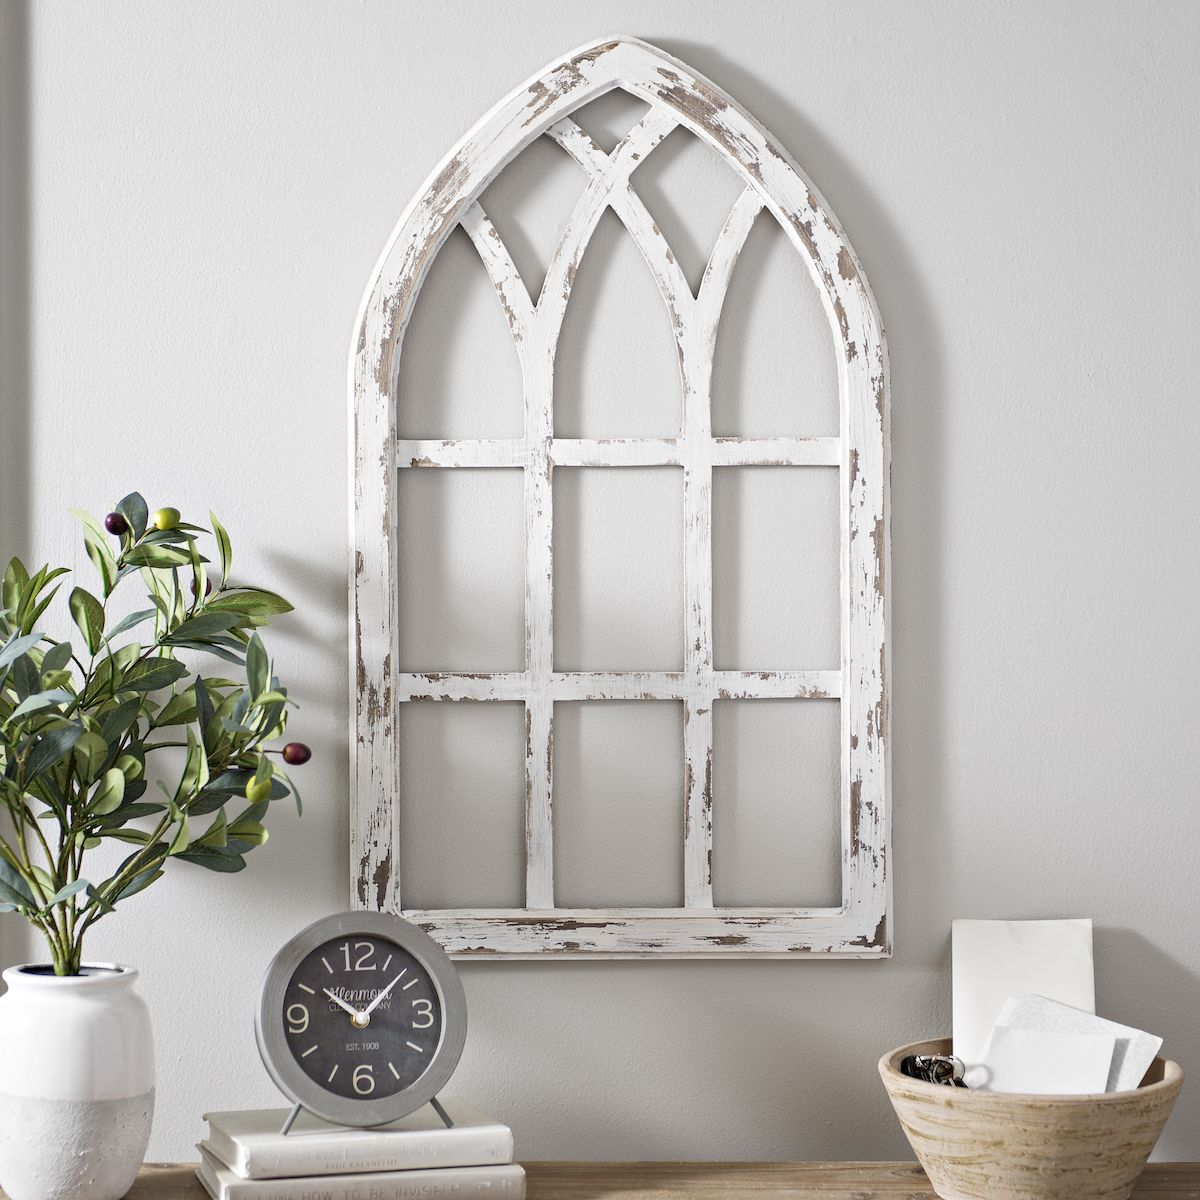 Window pane decor if you donut have a fireplace use wall decor to create a focal